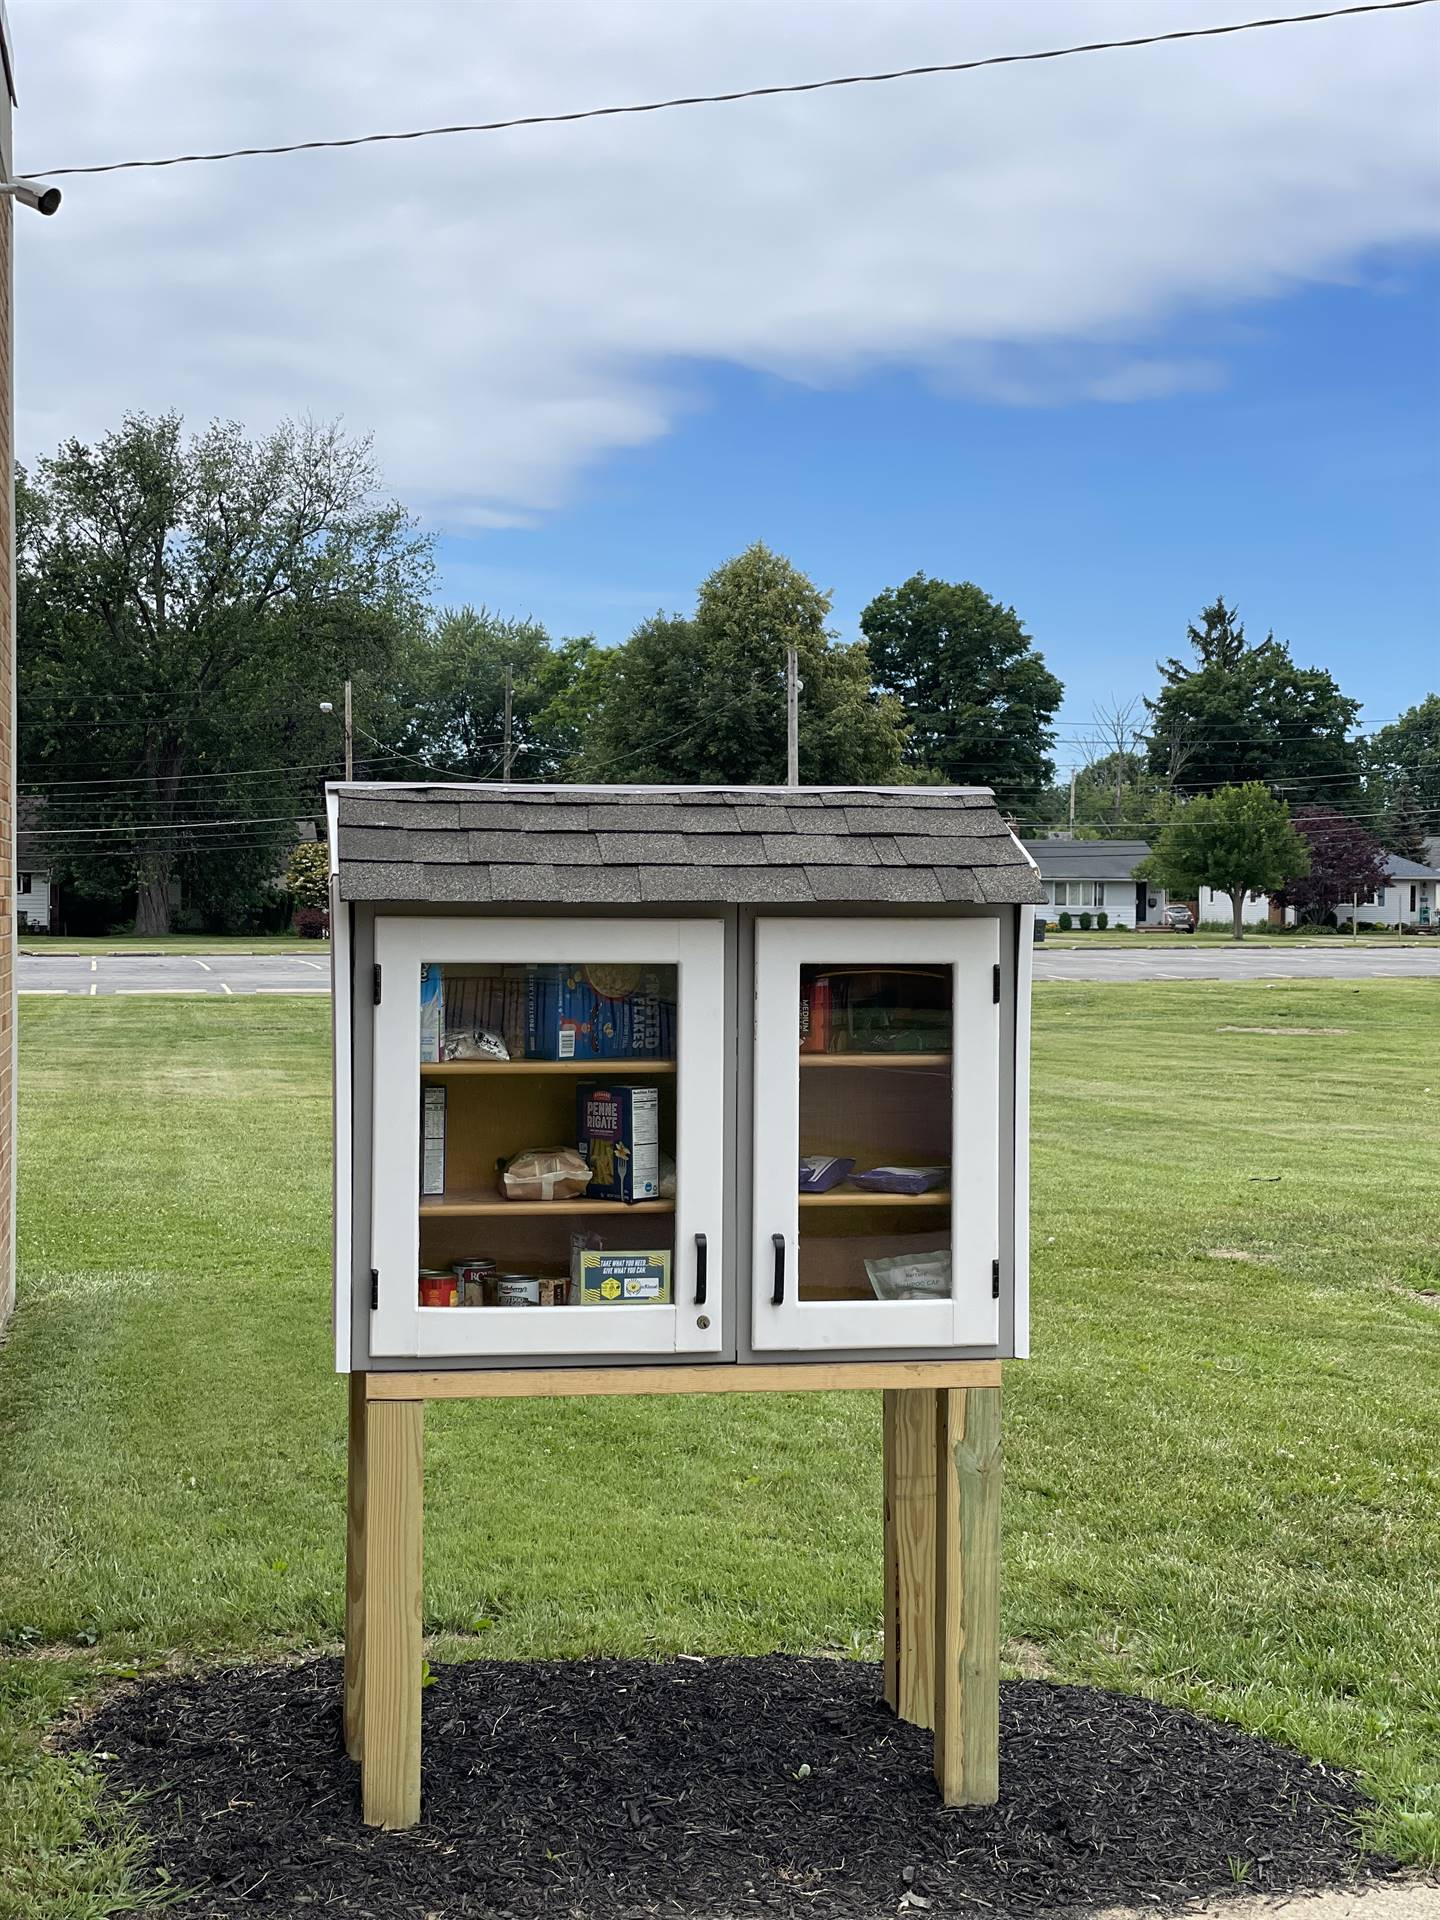 Free Little Food Pantry at the WFRC!